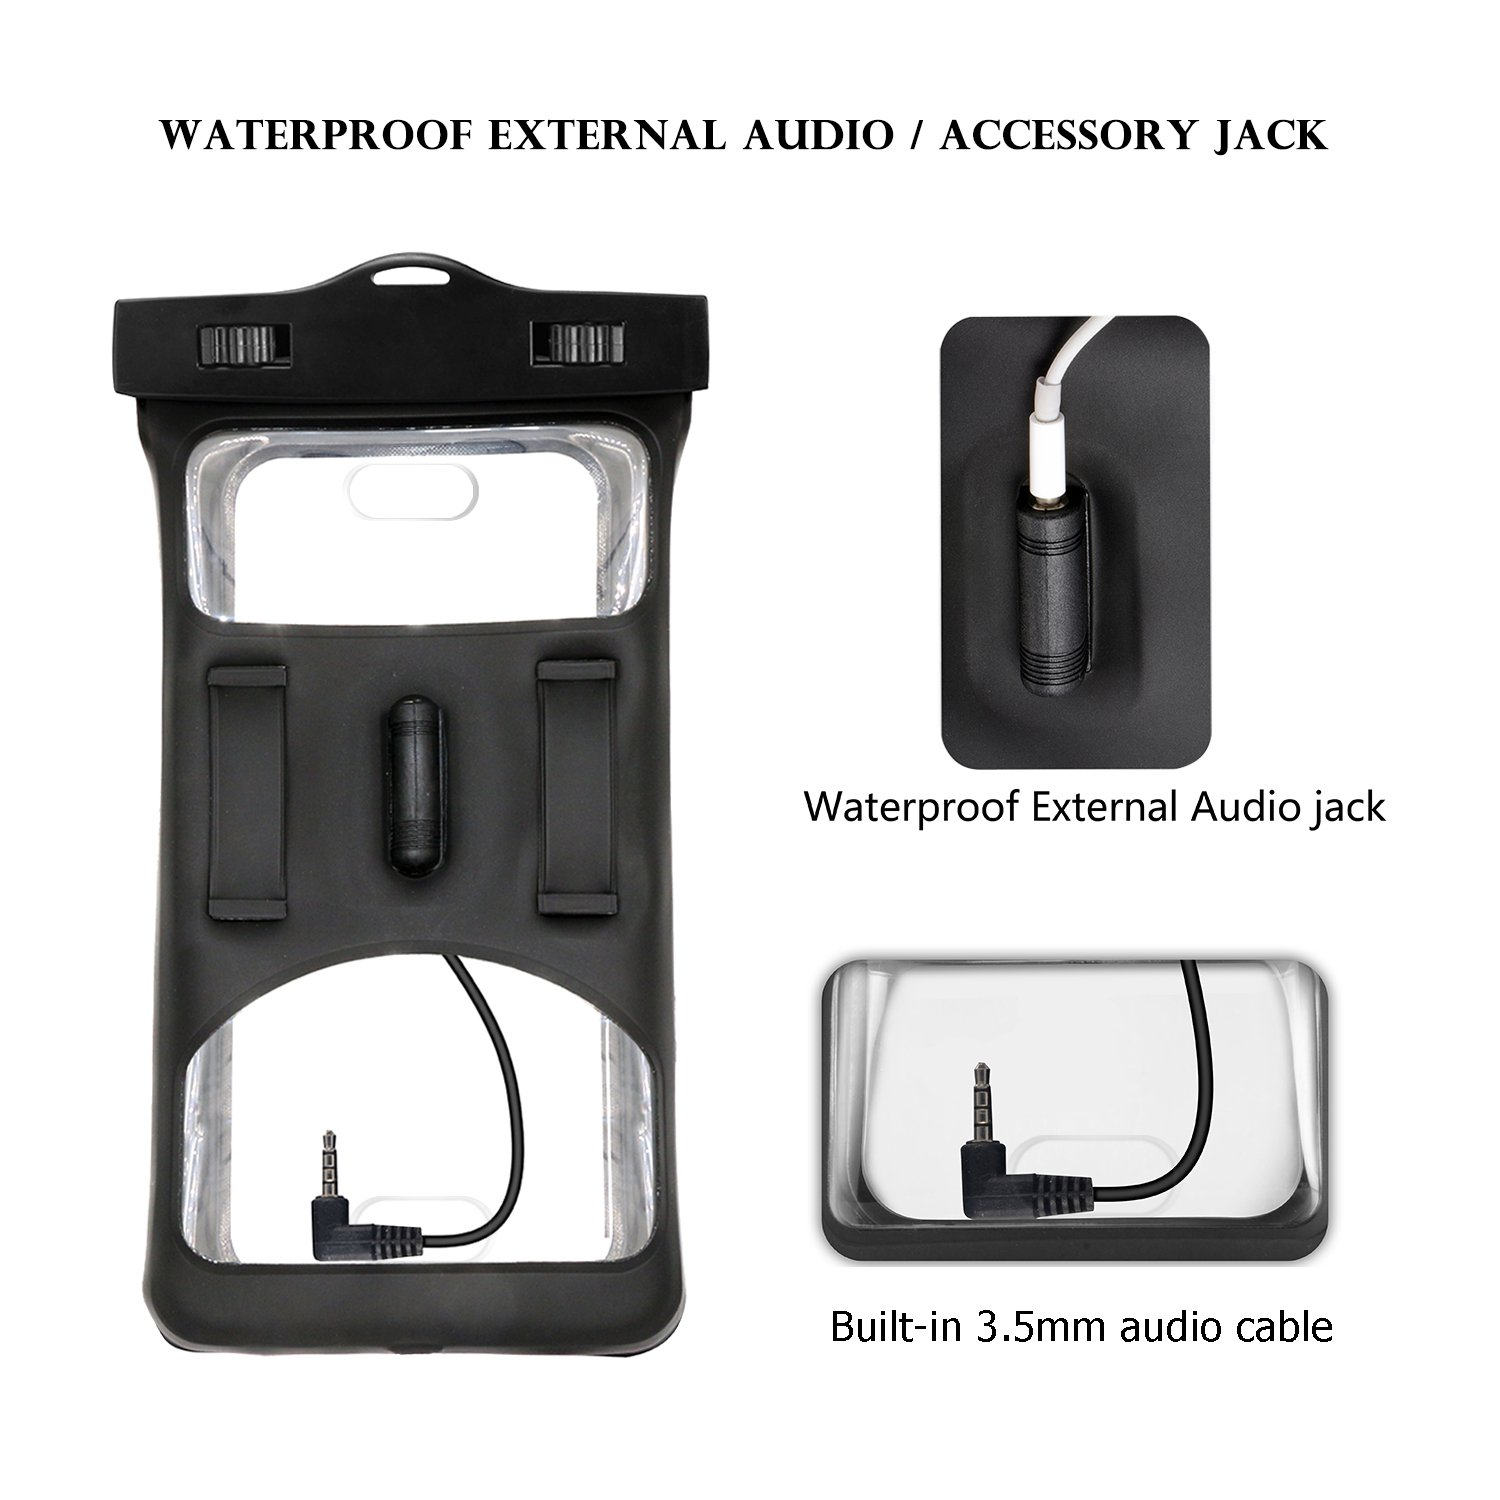 Floatable Waterproof Phone Case, Vansky Waterproof Phone Pouch Dry Bag with Armband and Audio Jack for iPhone X, 8 Plus, 8, 7 Plus, 7, 6s, 6, Andriod; TPU Construction IPX8 Certified by Vansky (Image #2)